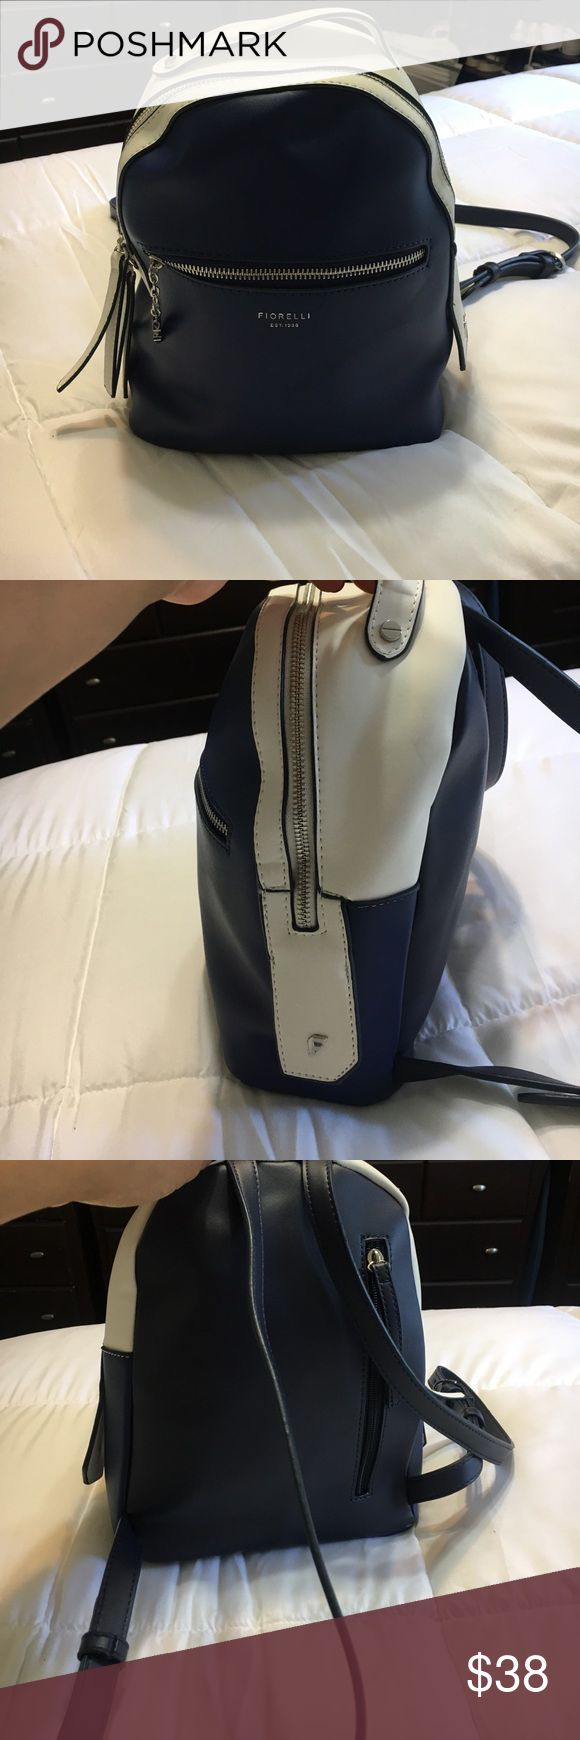 """Like new Fiorelli backpack purse Like new, blue and white backpack purse, measurements are 12""""11""""4 1/2..strap drop is 30 inches and can be made shorter or longer Giorgio Fiorelli Bags Backpacks"""